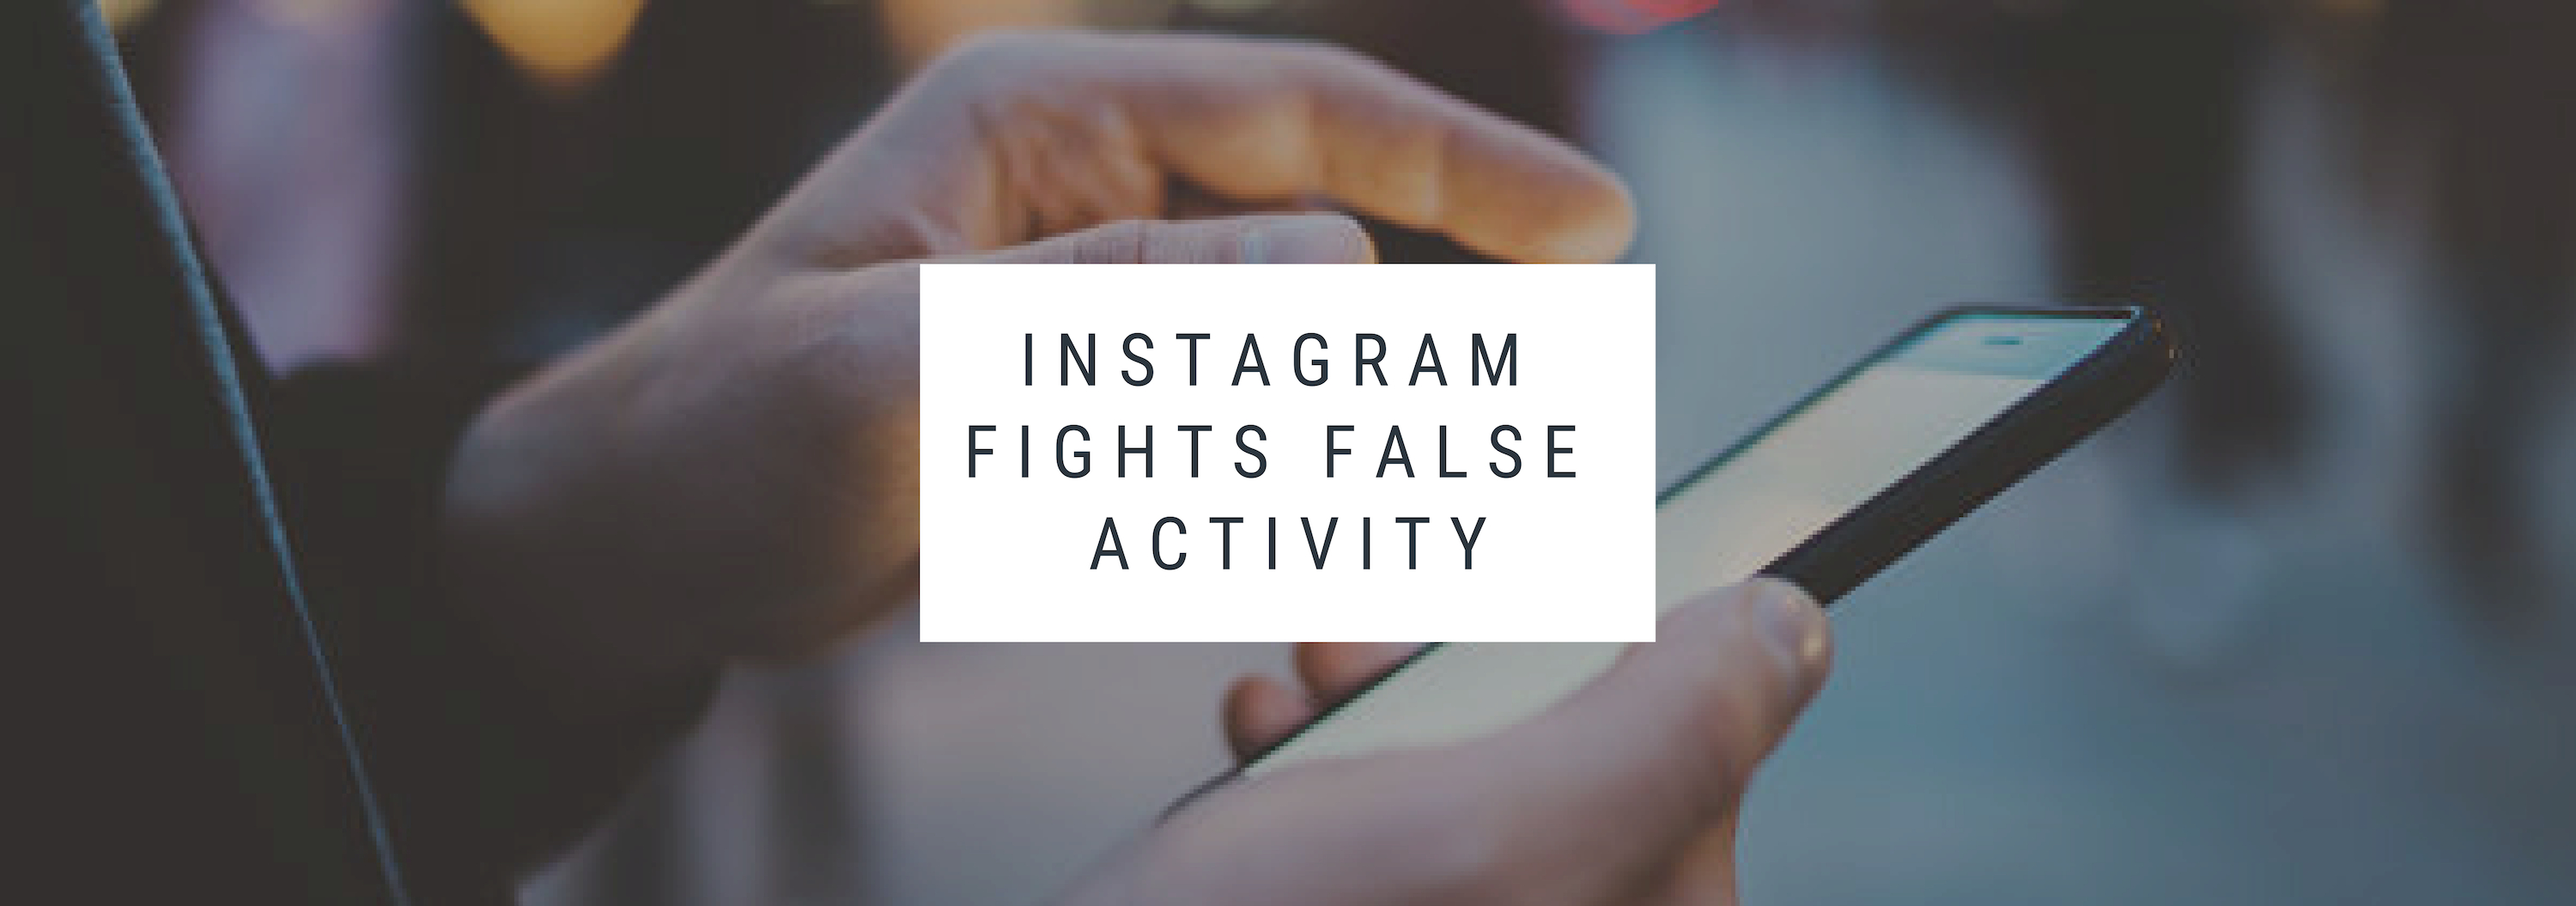 Instagram fights false activity: bots, cheating, and fake profiles